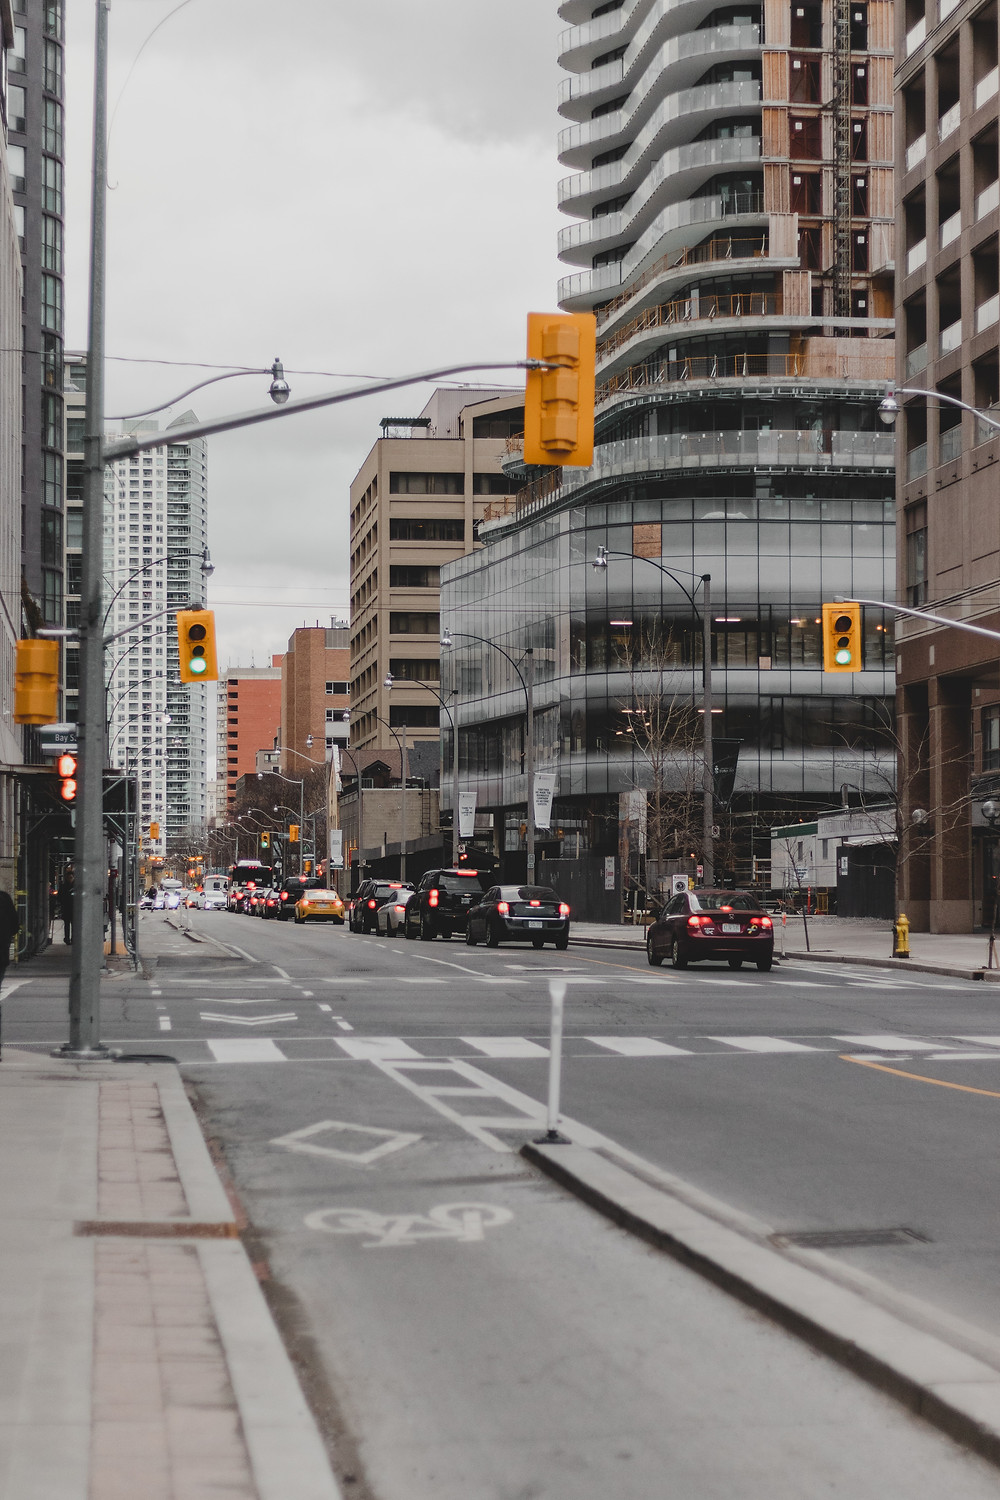 Intersection in Toronto.